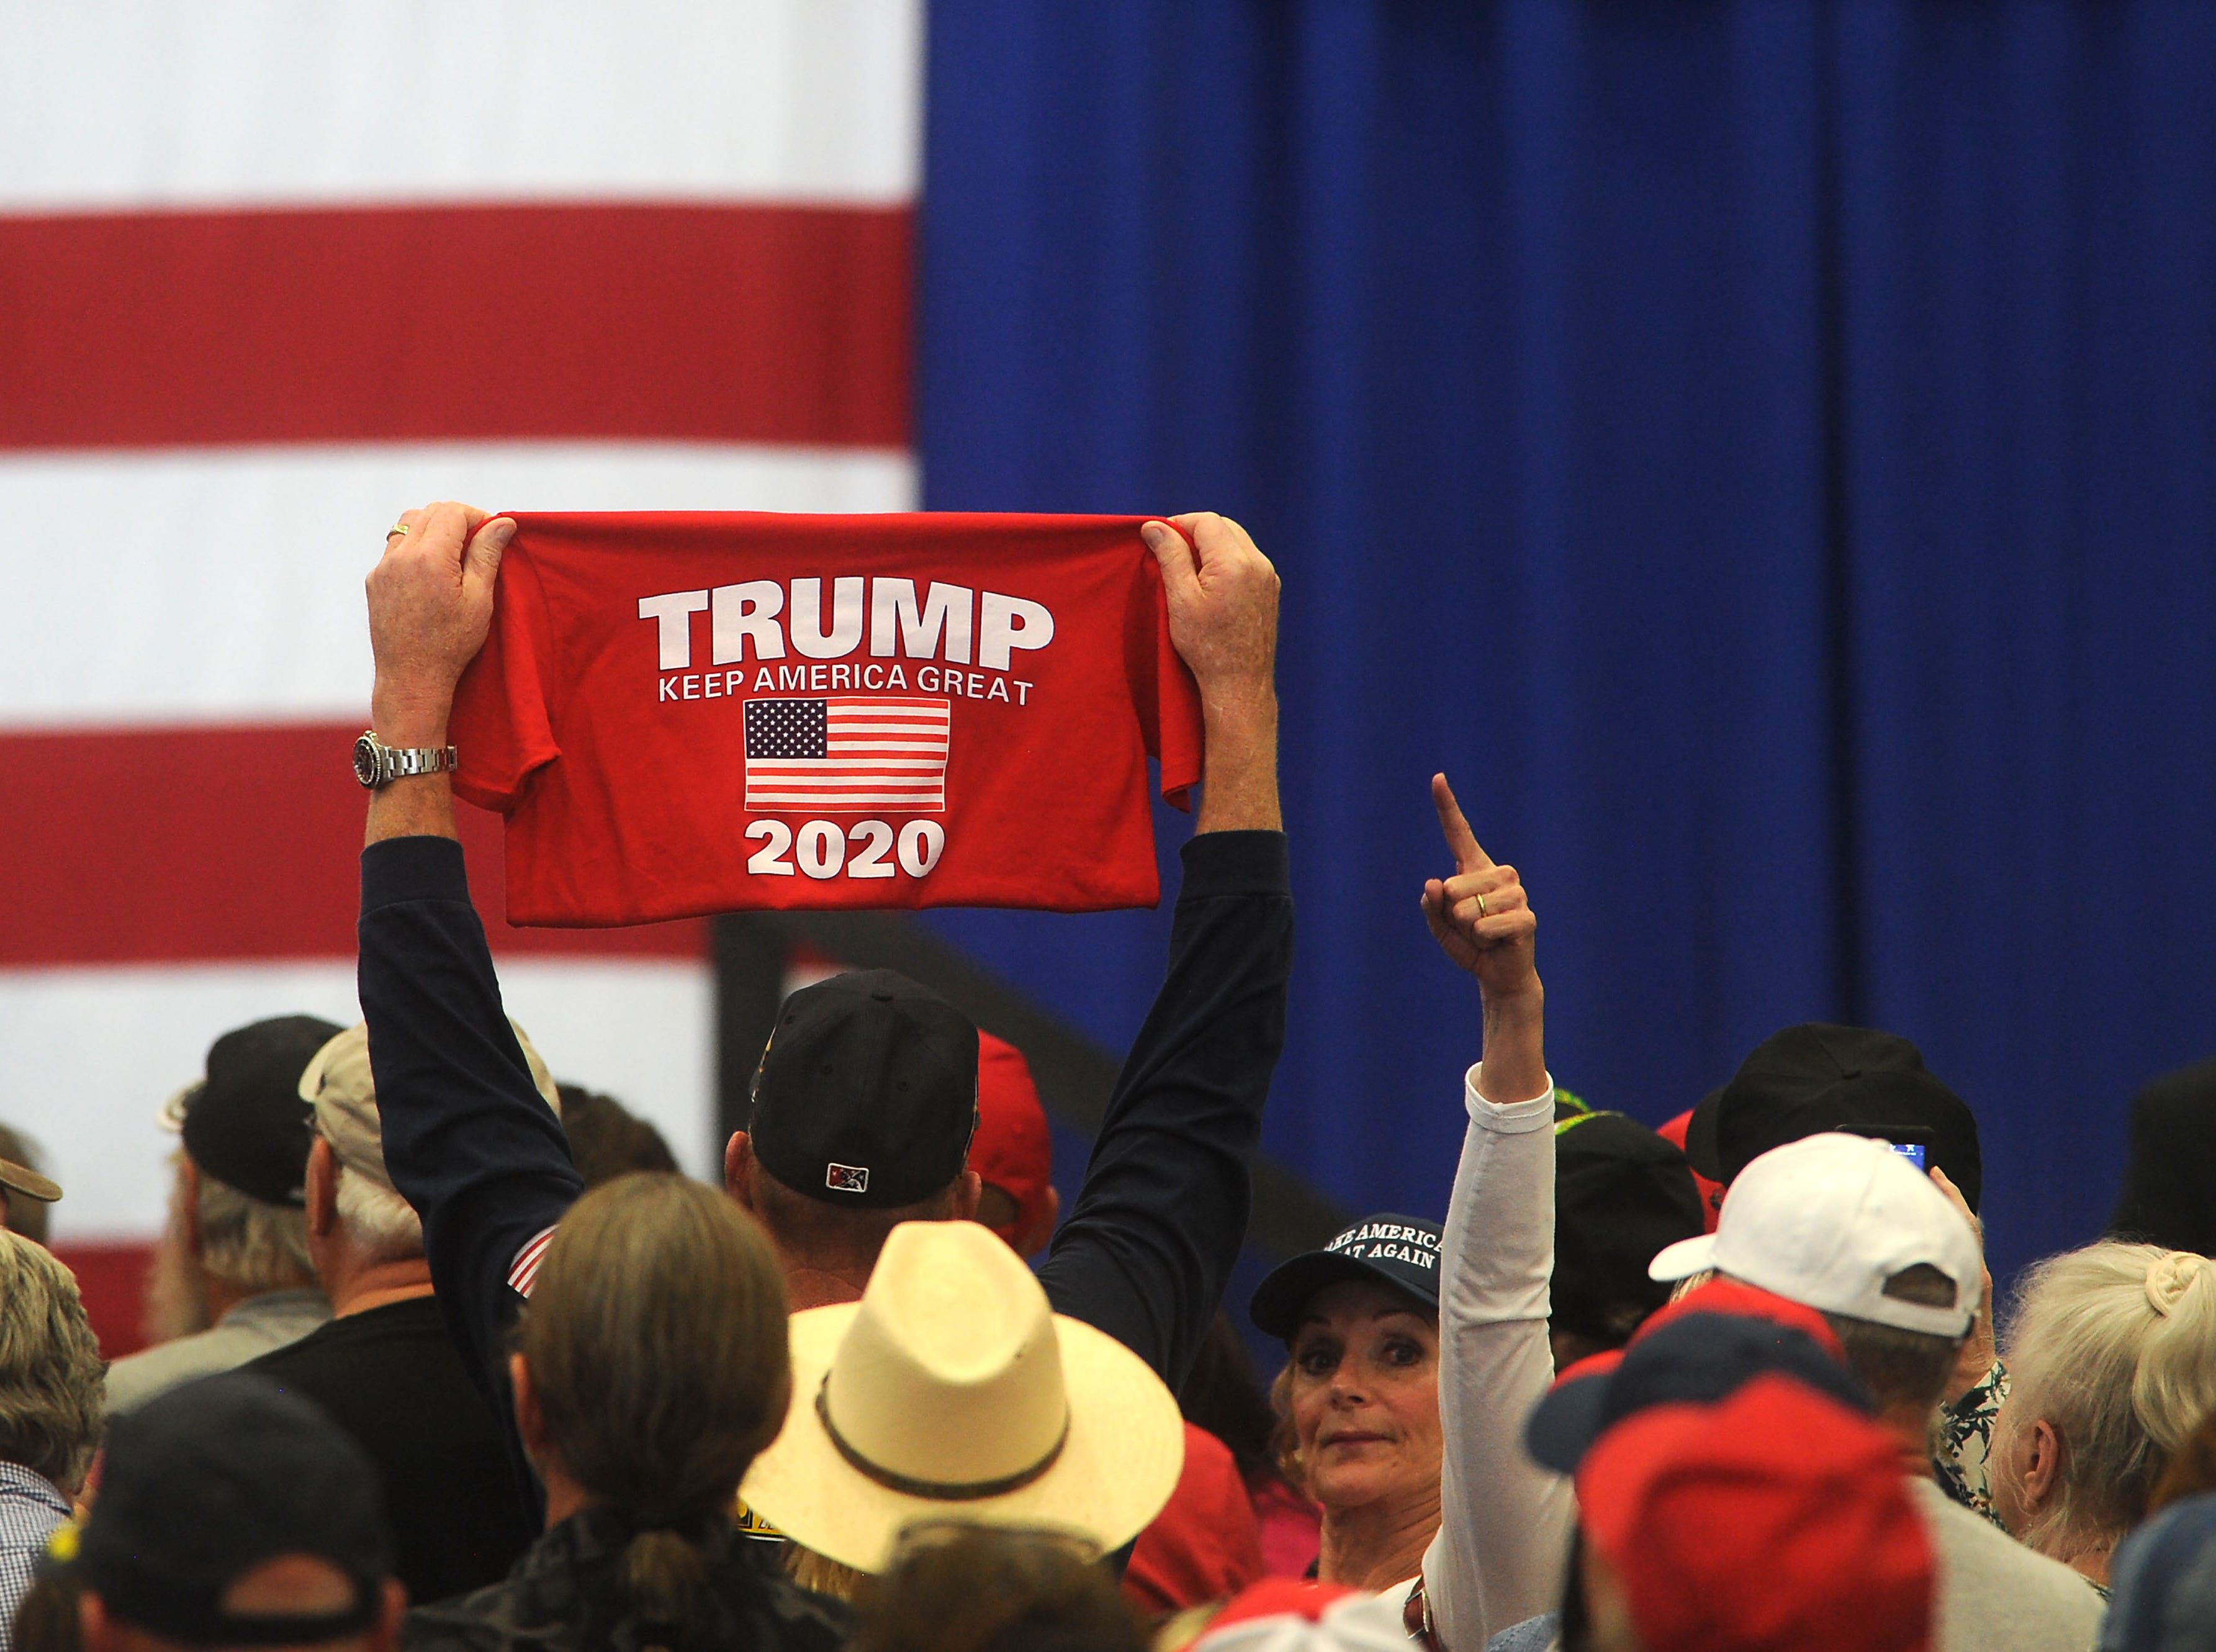 A supporter holds up a Trump shirt as Vice President Mike Pence speaks at the Carson City Airport on Oct. 27, 2018.